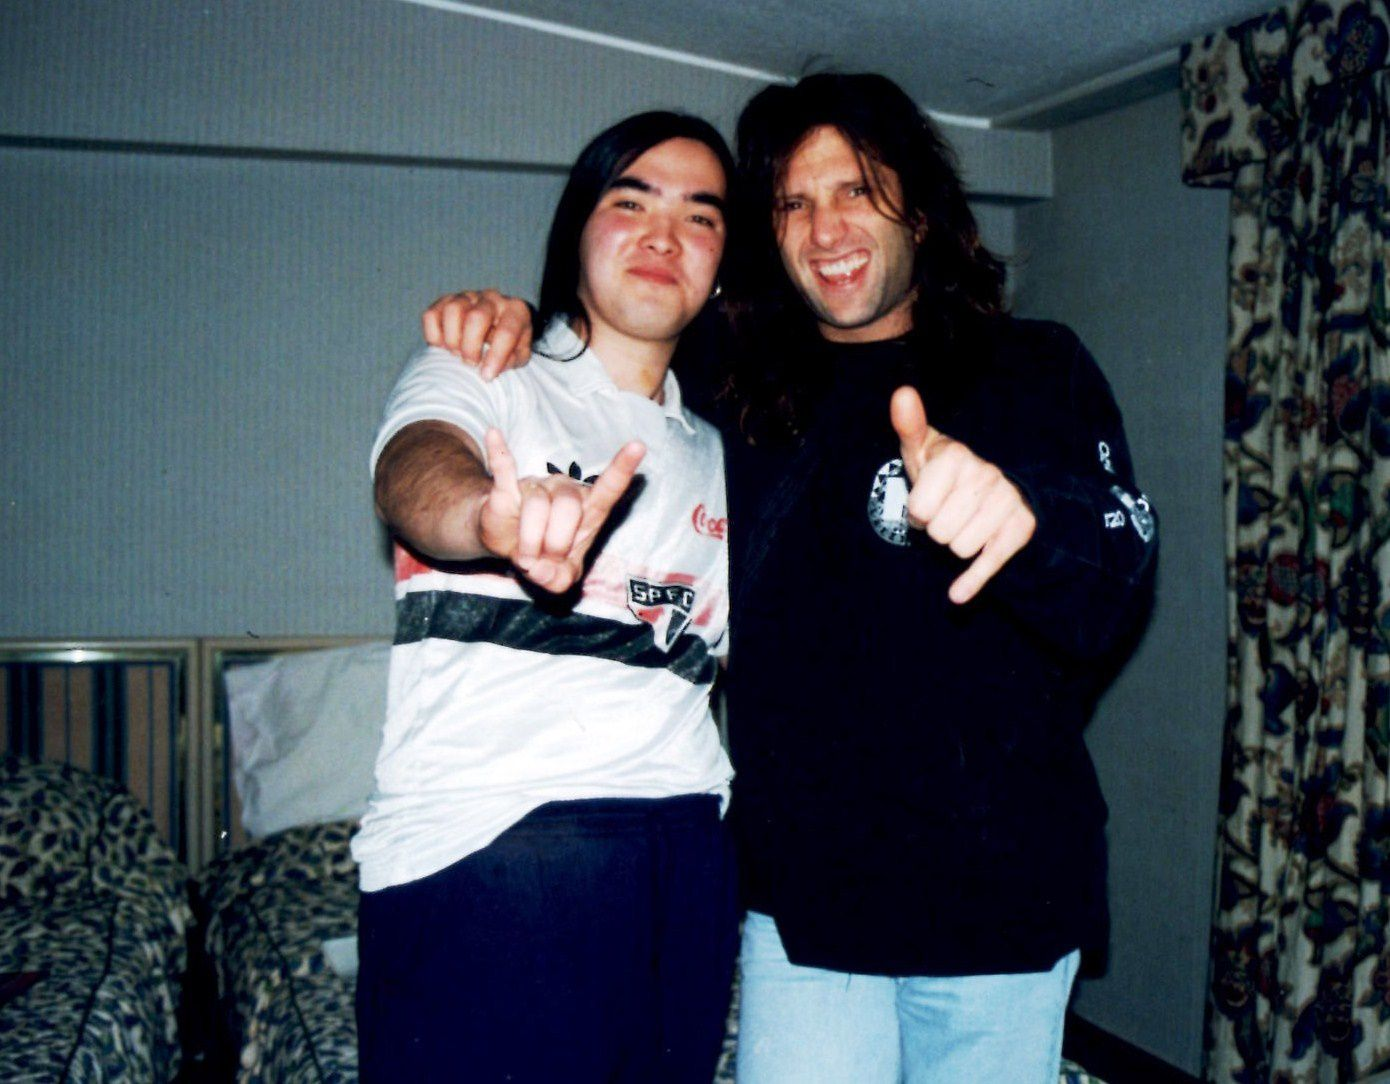 Rob Affuso (Skid Row) and fan in London